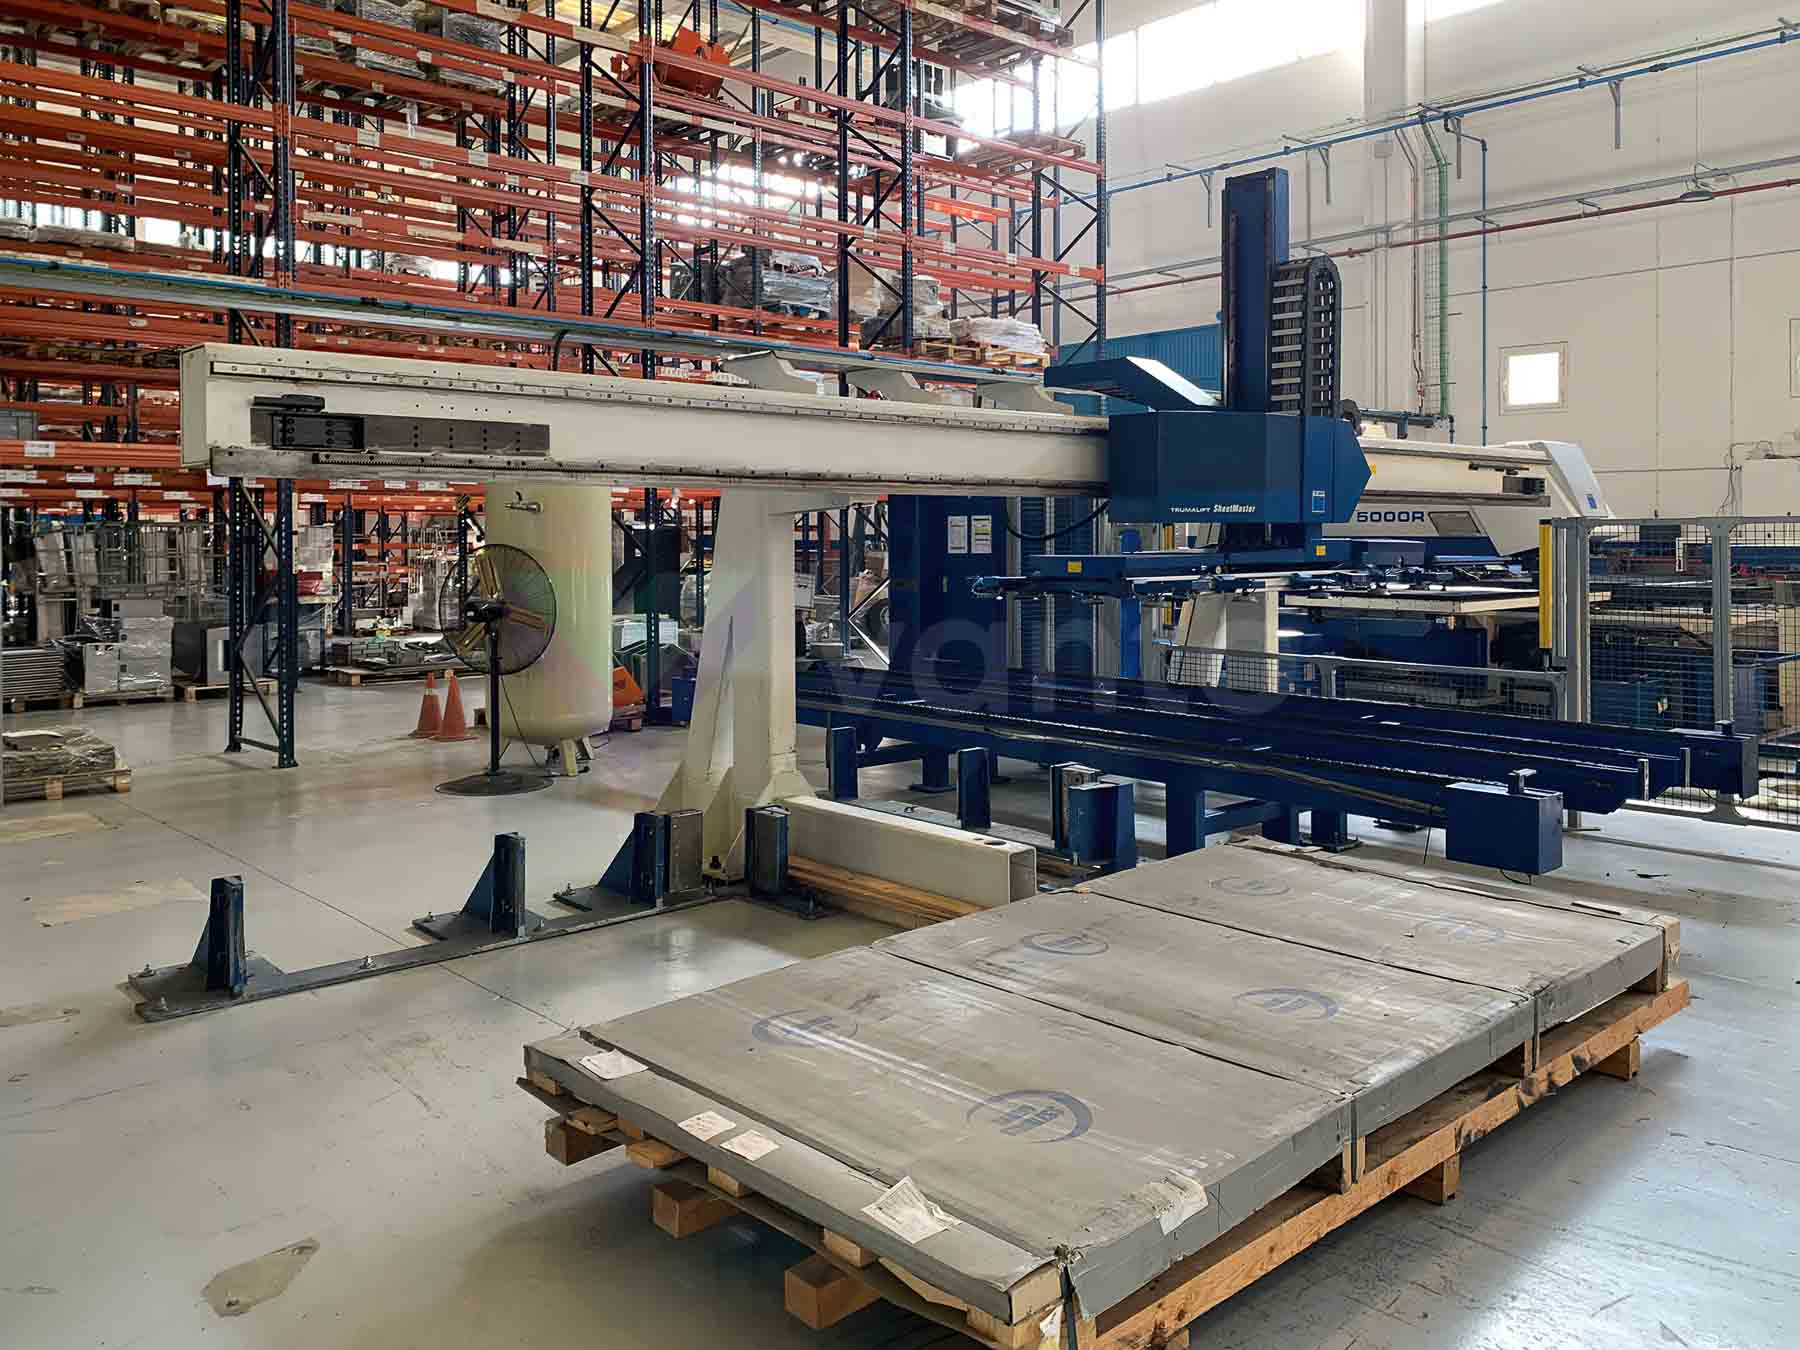 TRUMPF TRUMATIC 5000R CNC punching machine (2007) id10521